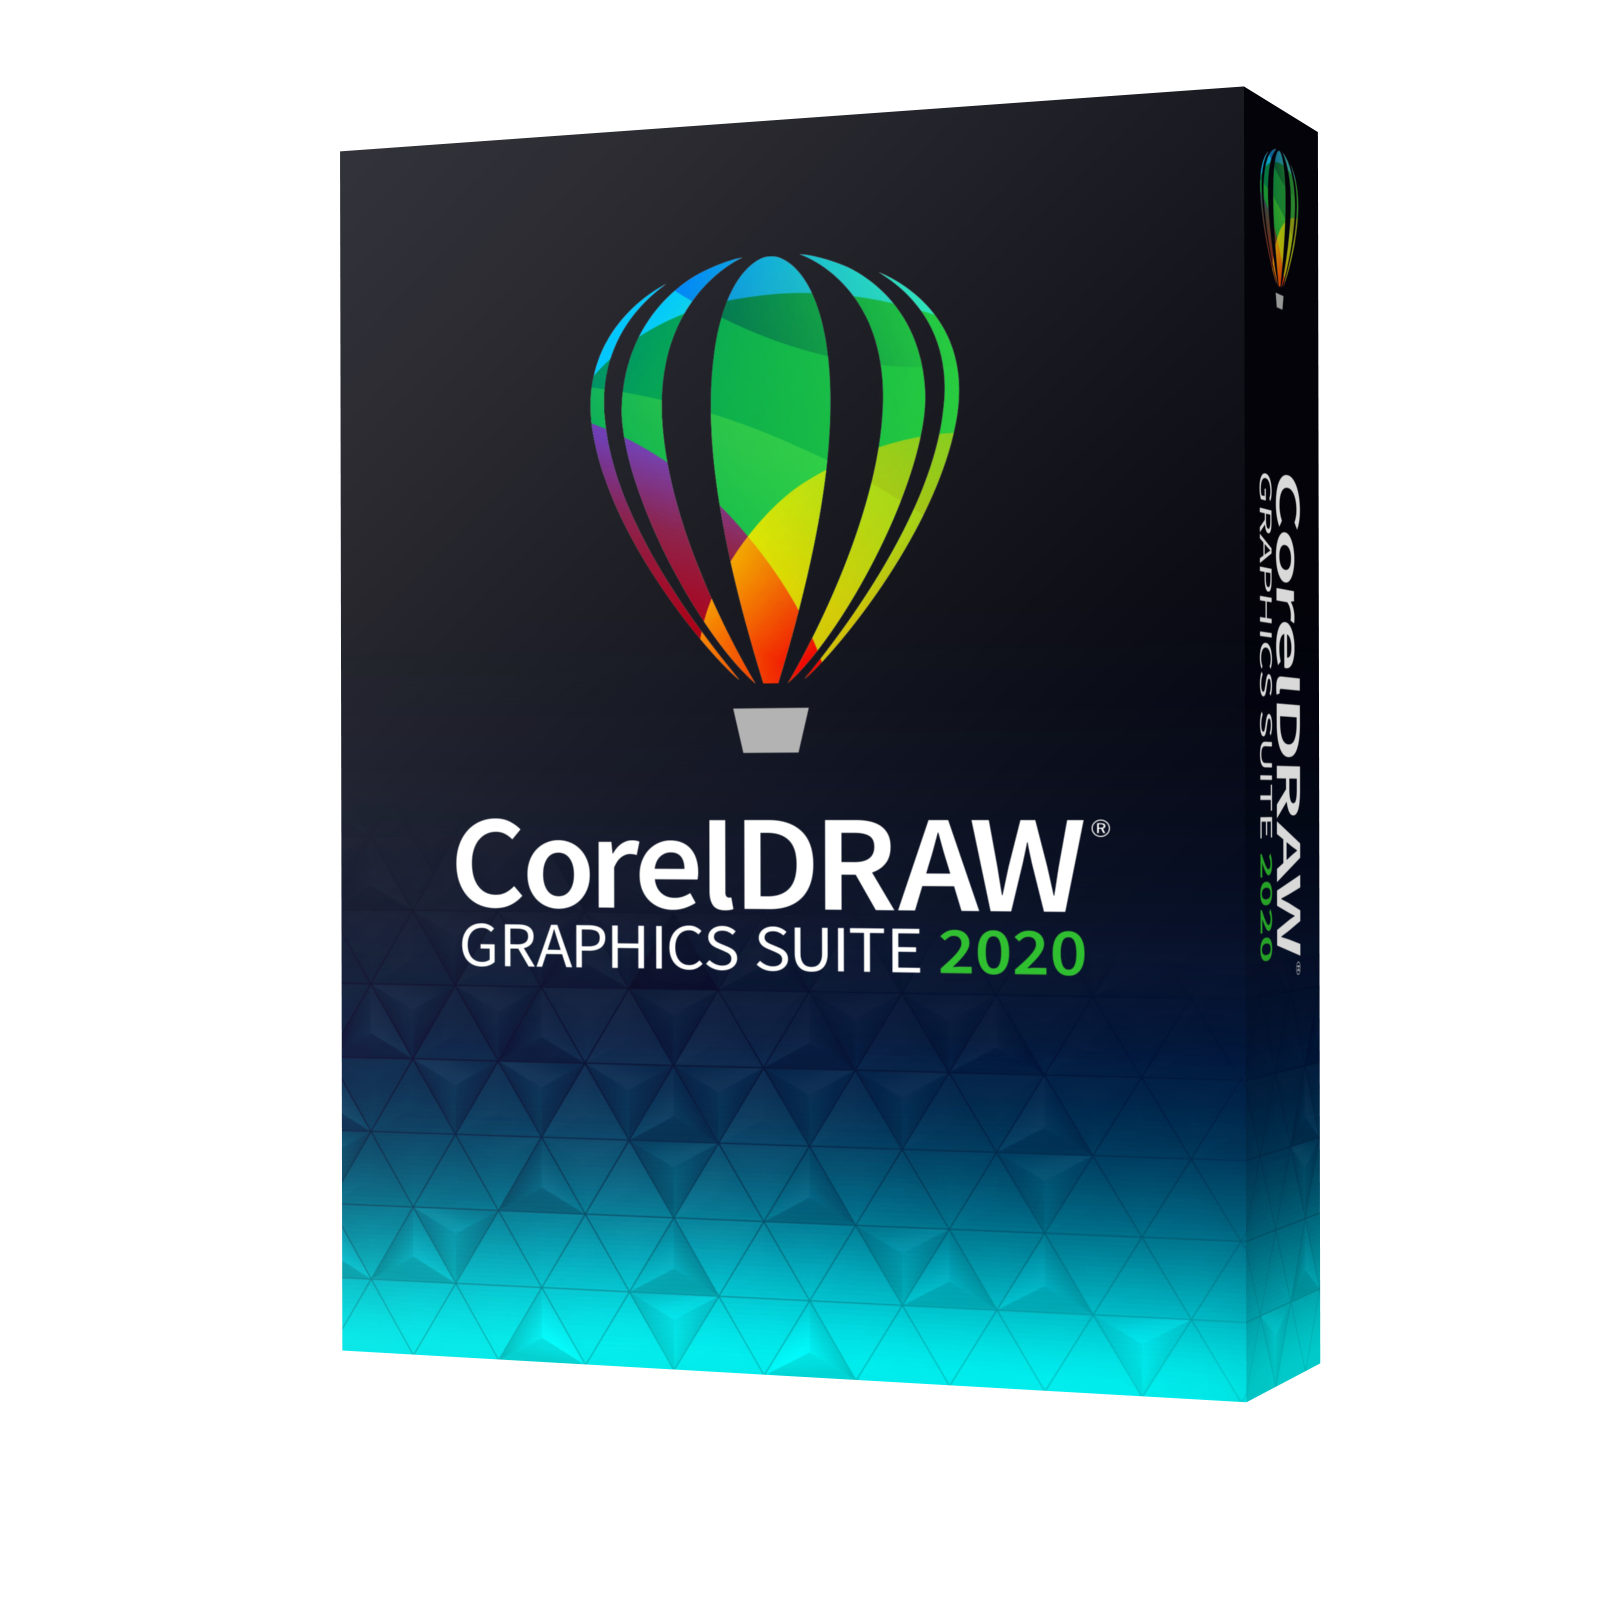 corelDRAW-Graphics-Suite-2020-boxed-mac.png